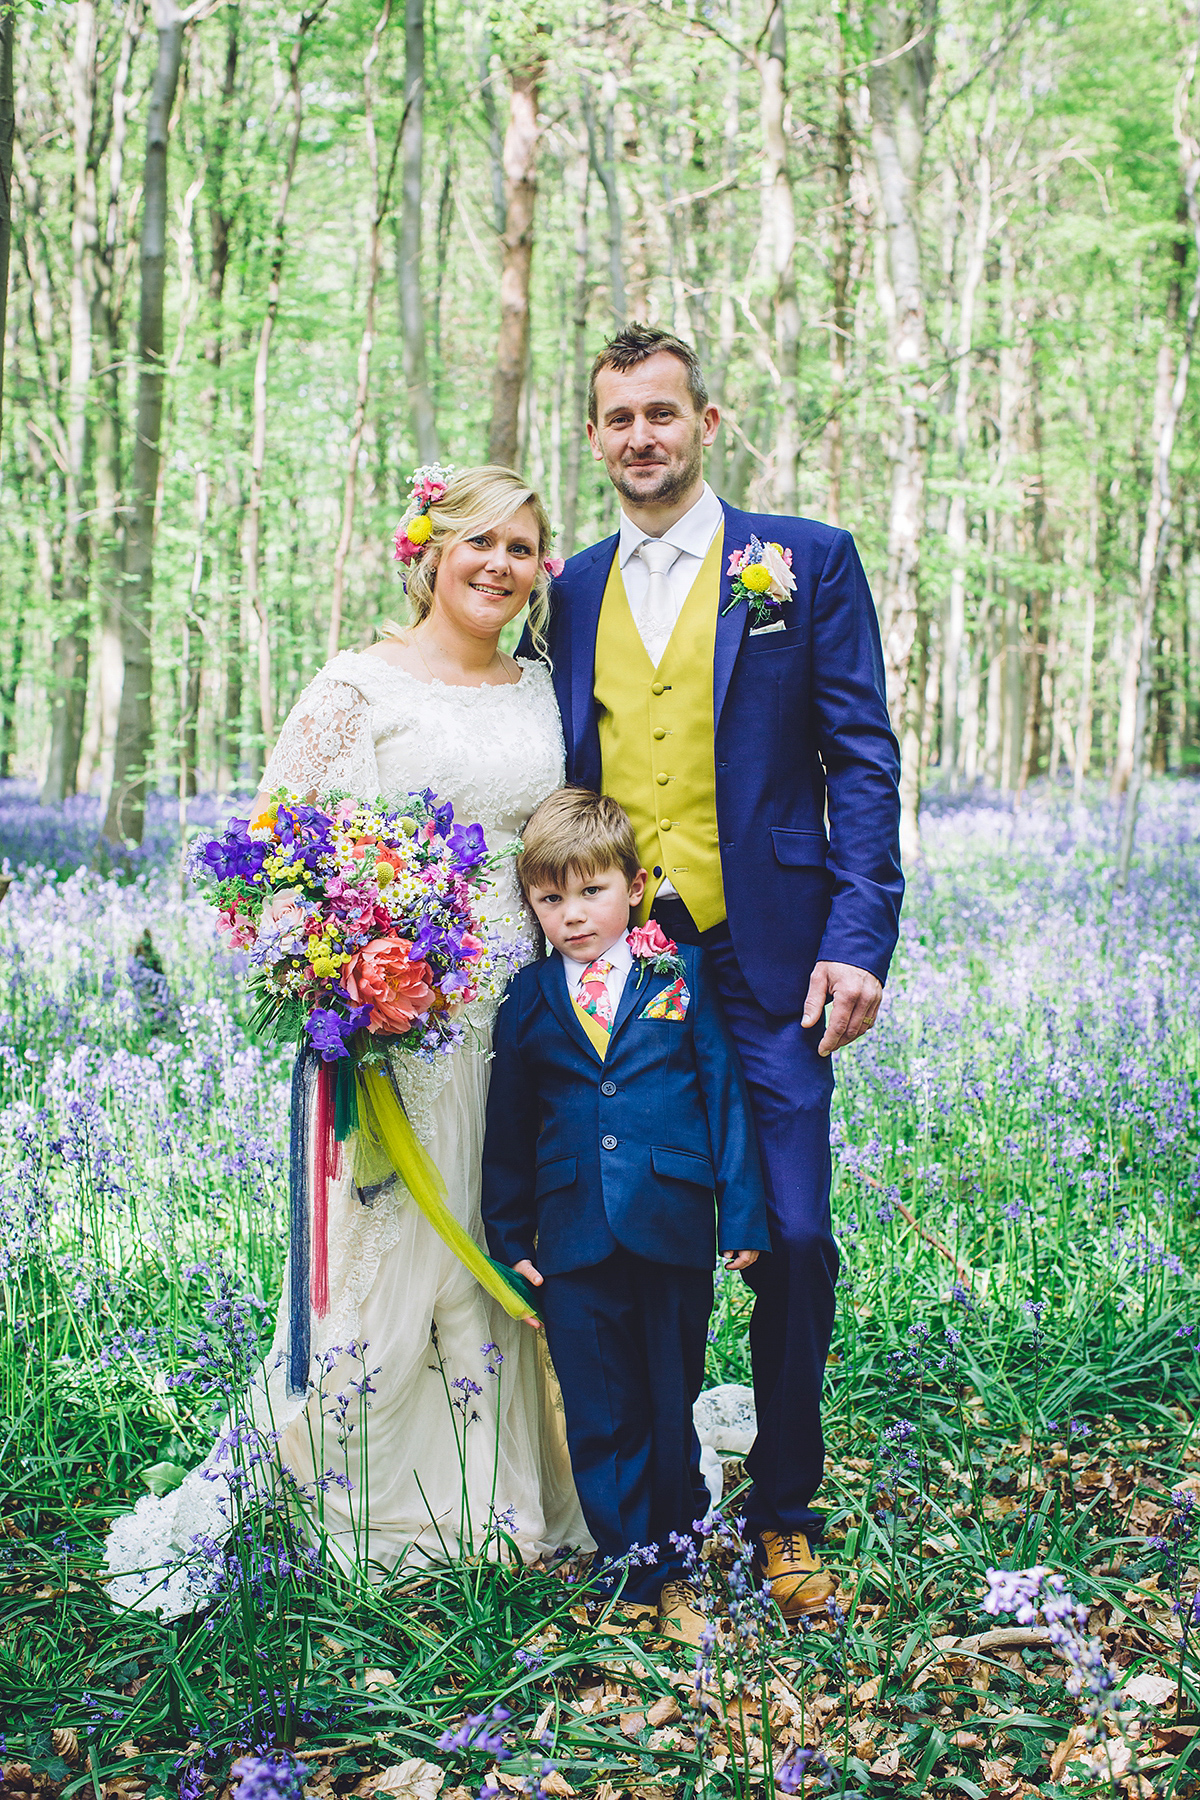 A Bridal Boutique Owner's Colourful and Whimsical Woodland Wedding Amidst The Bluebells